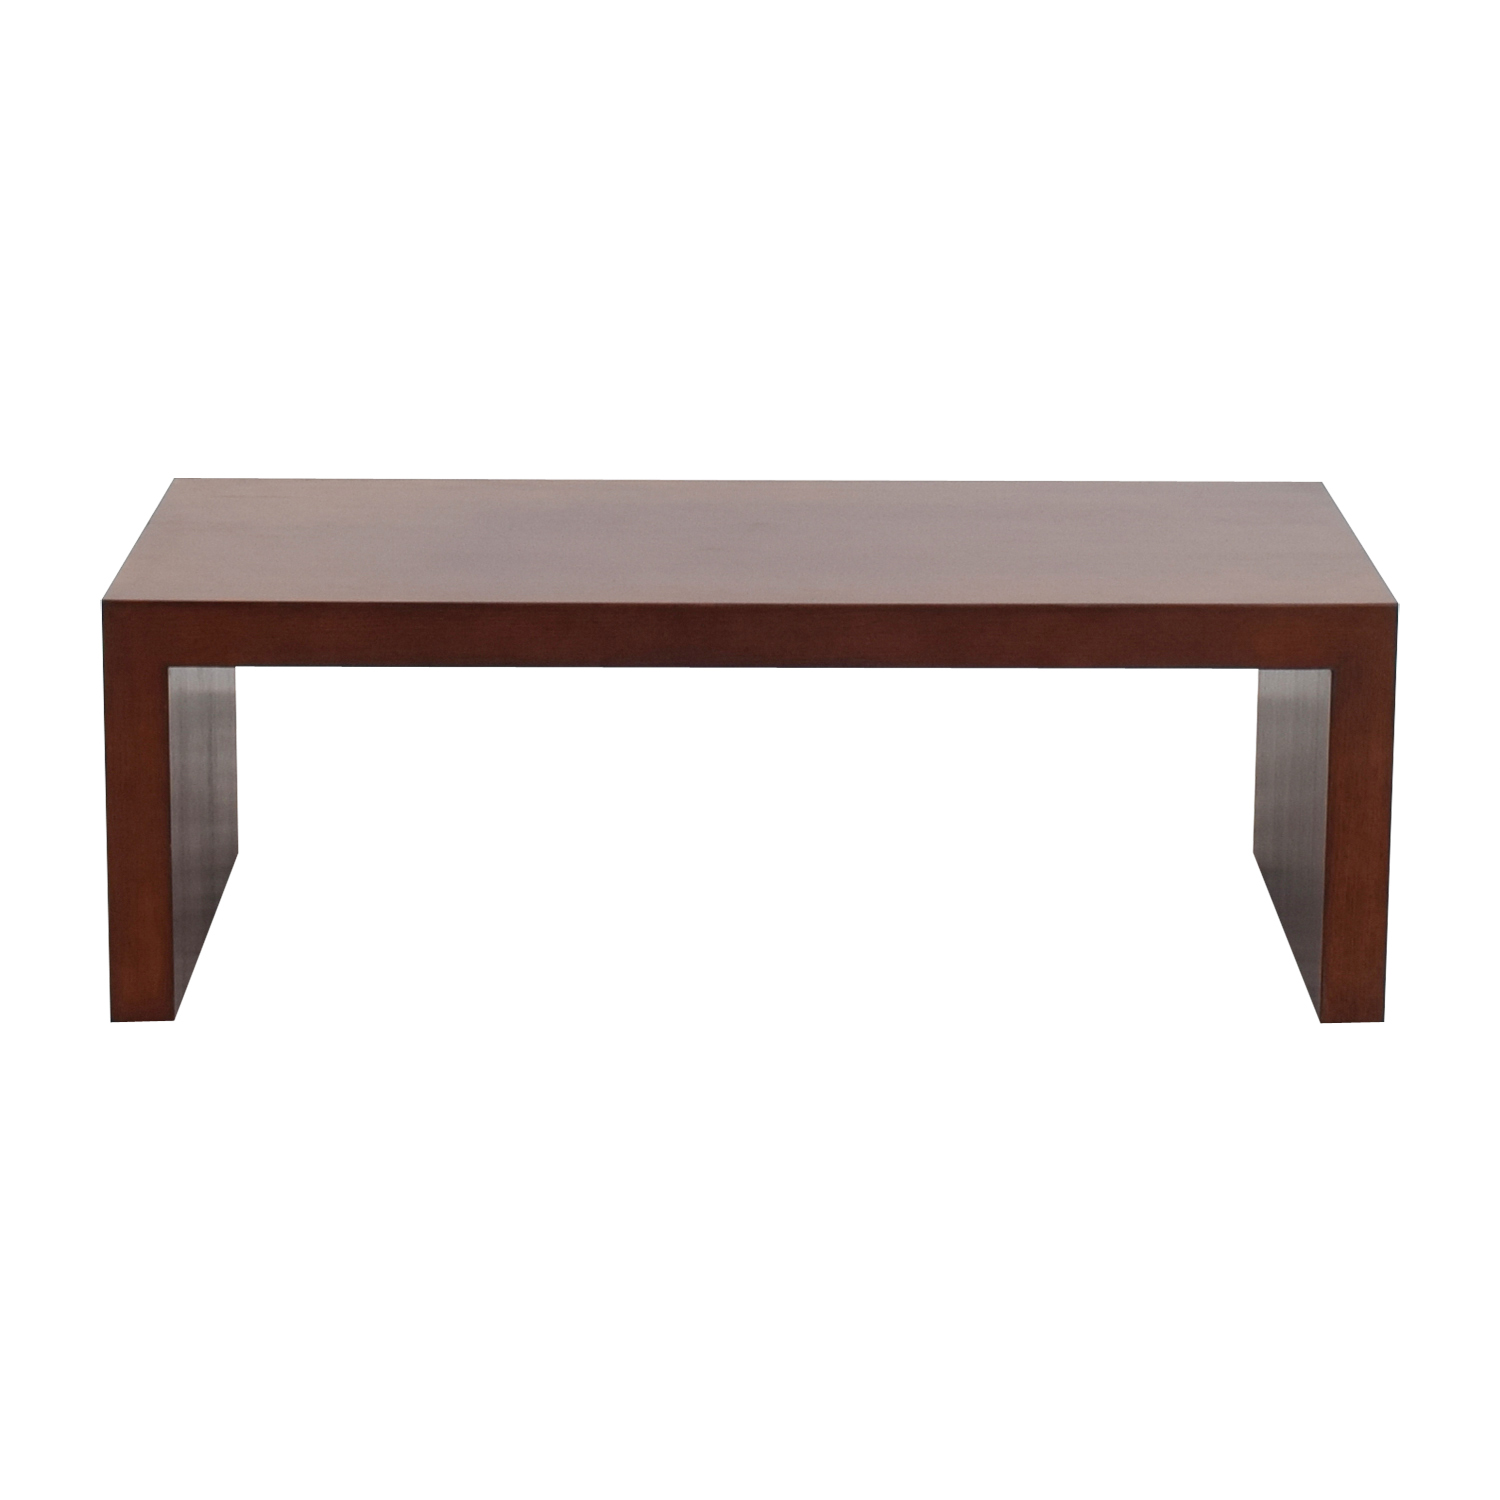 Ethan Allen Ethan Allen Wood Coffee Table dimensions